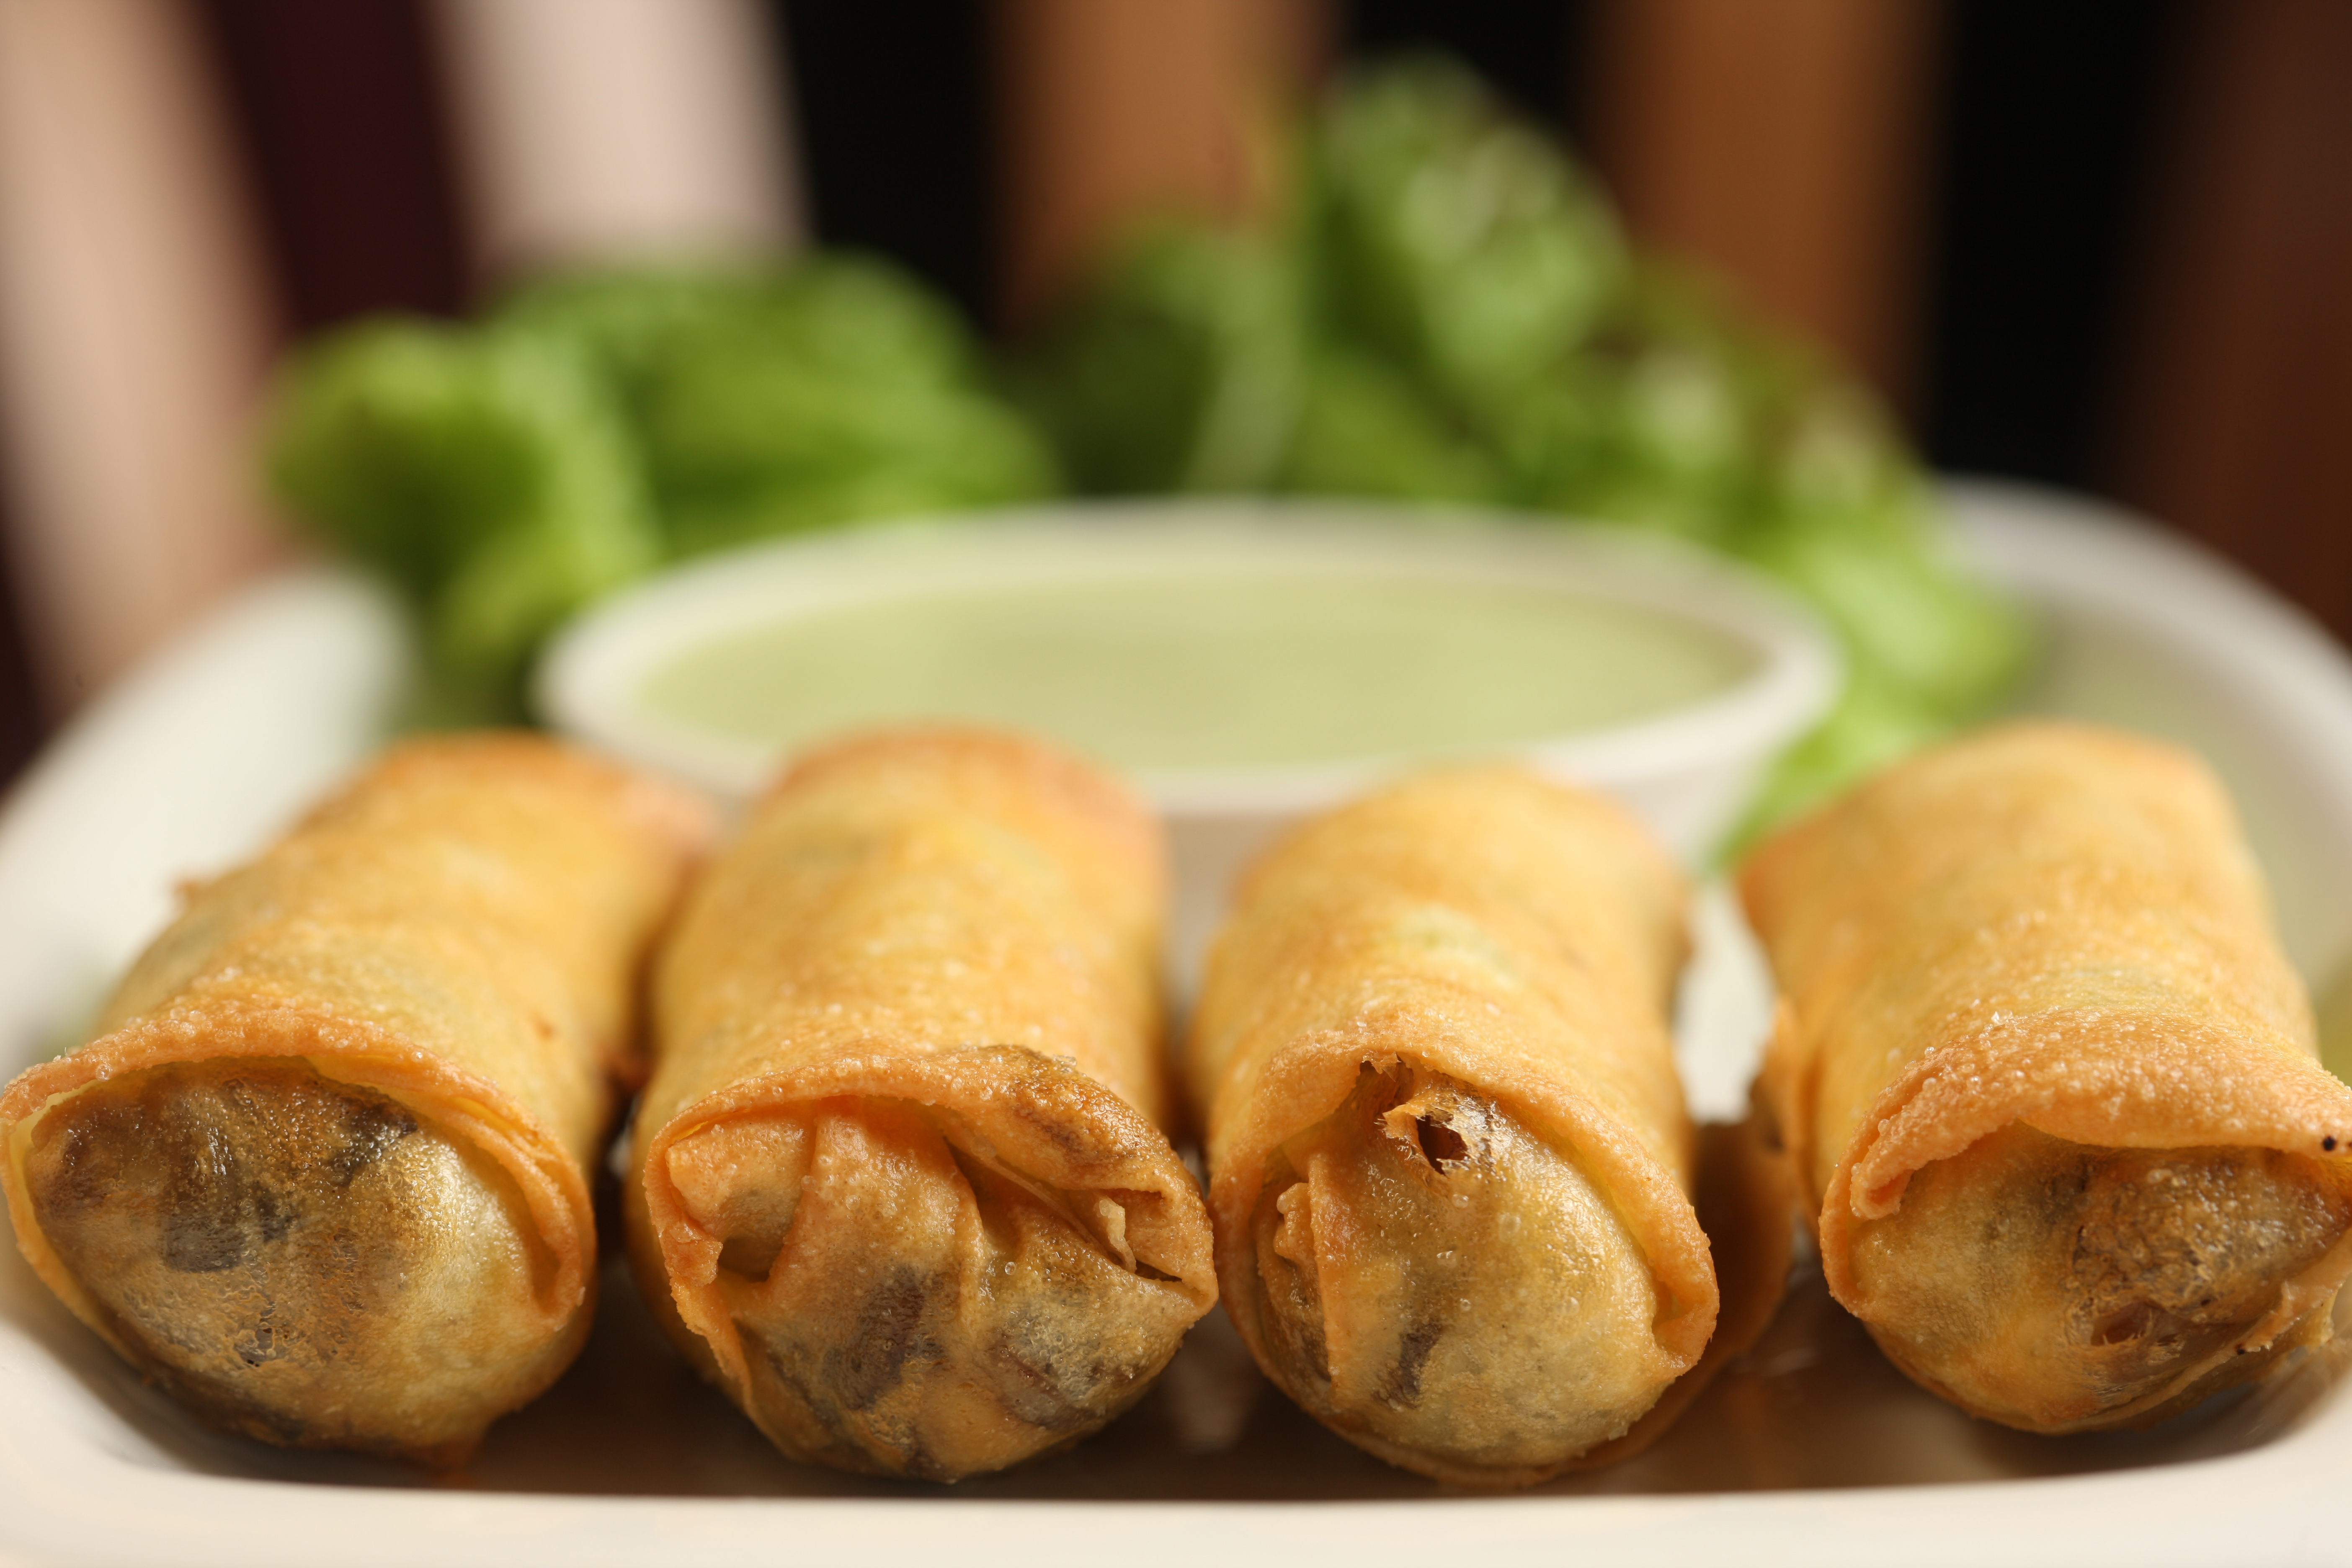 Fragrant mushroom egg rolls from Spice Market - The NYC ...